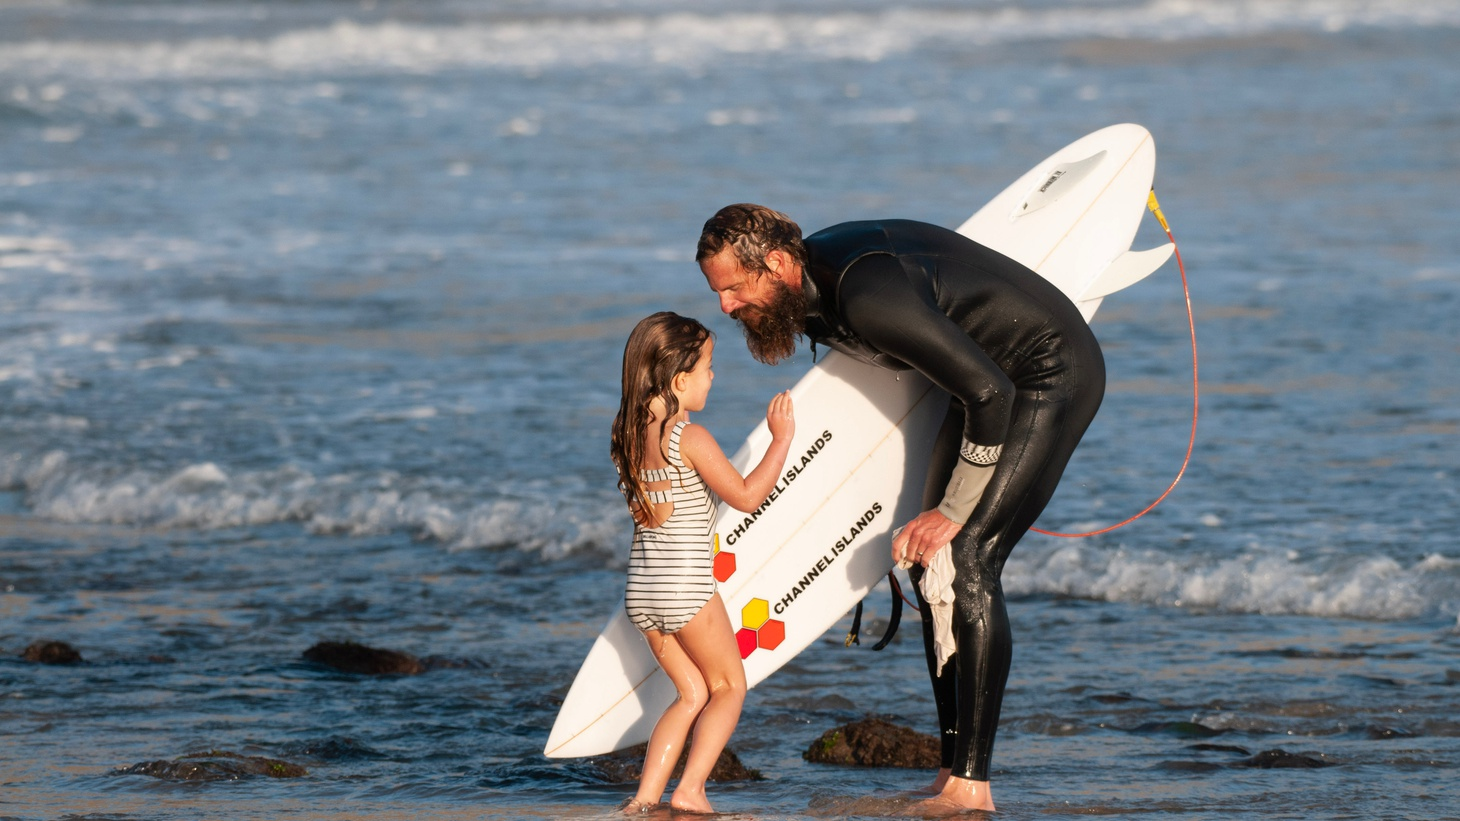 Surfer and former lead pastor of Reality Ministries Britt Merrick with his daughter.